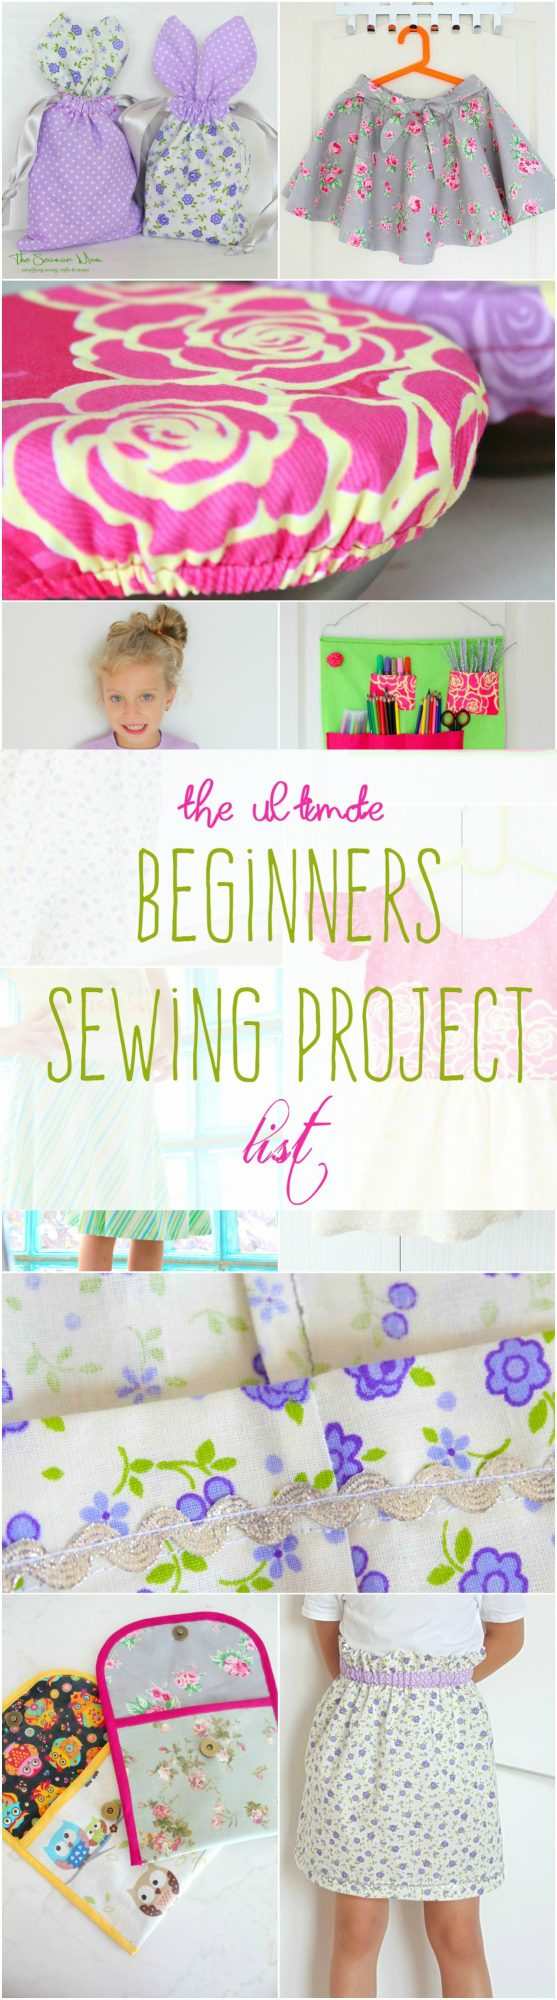 Beginners Sewing Project